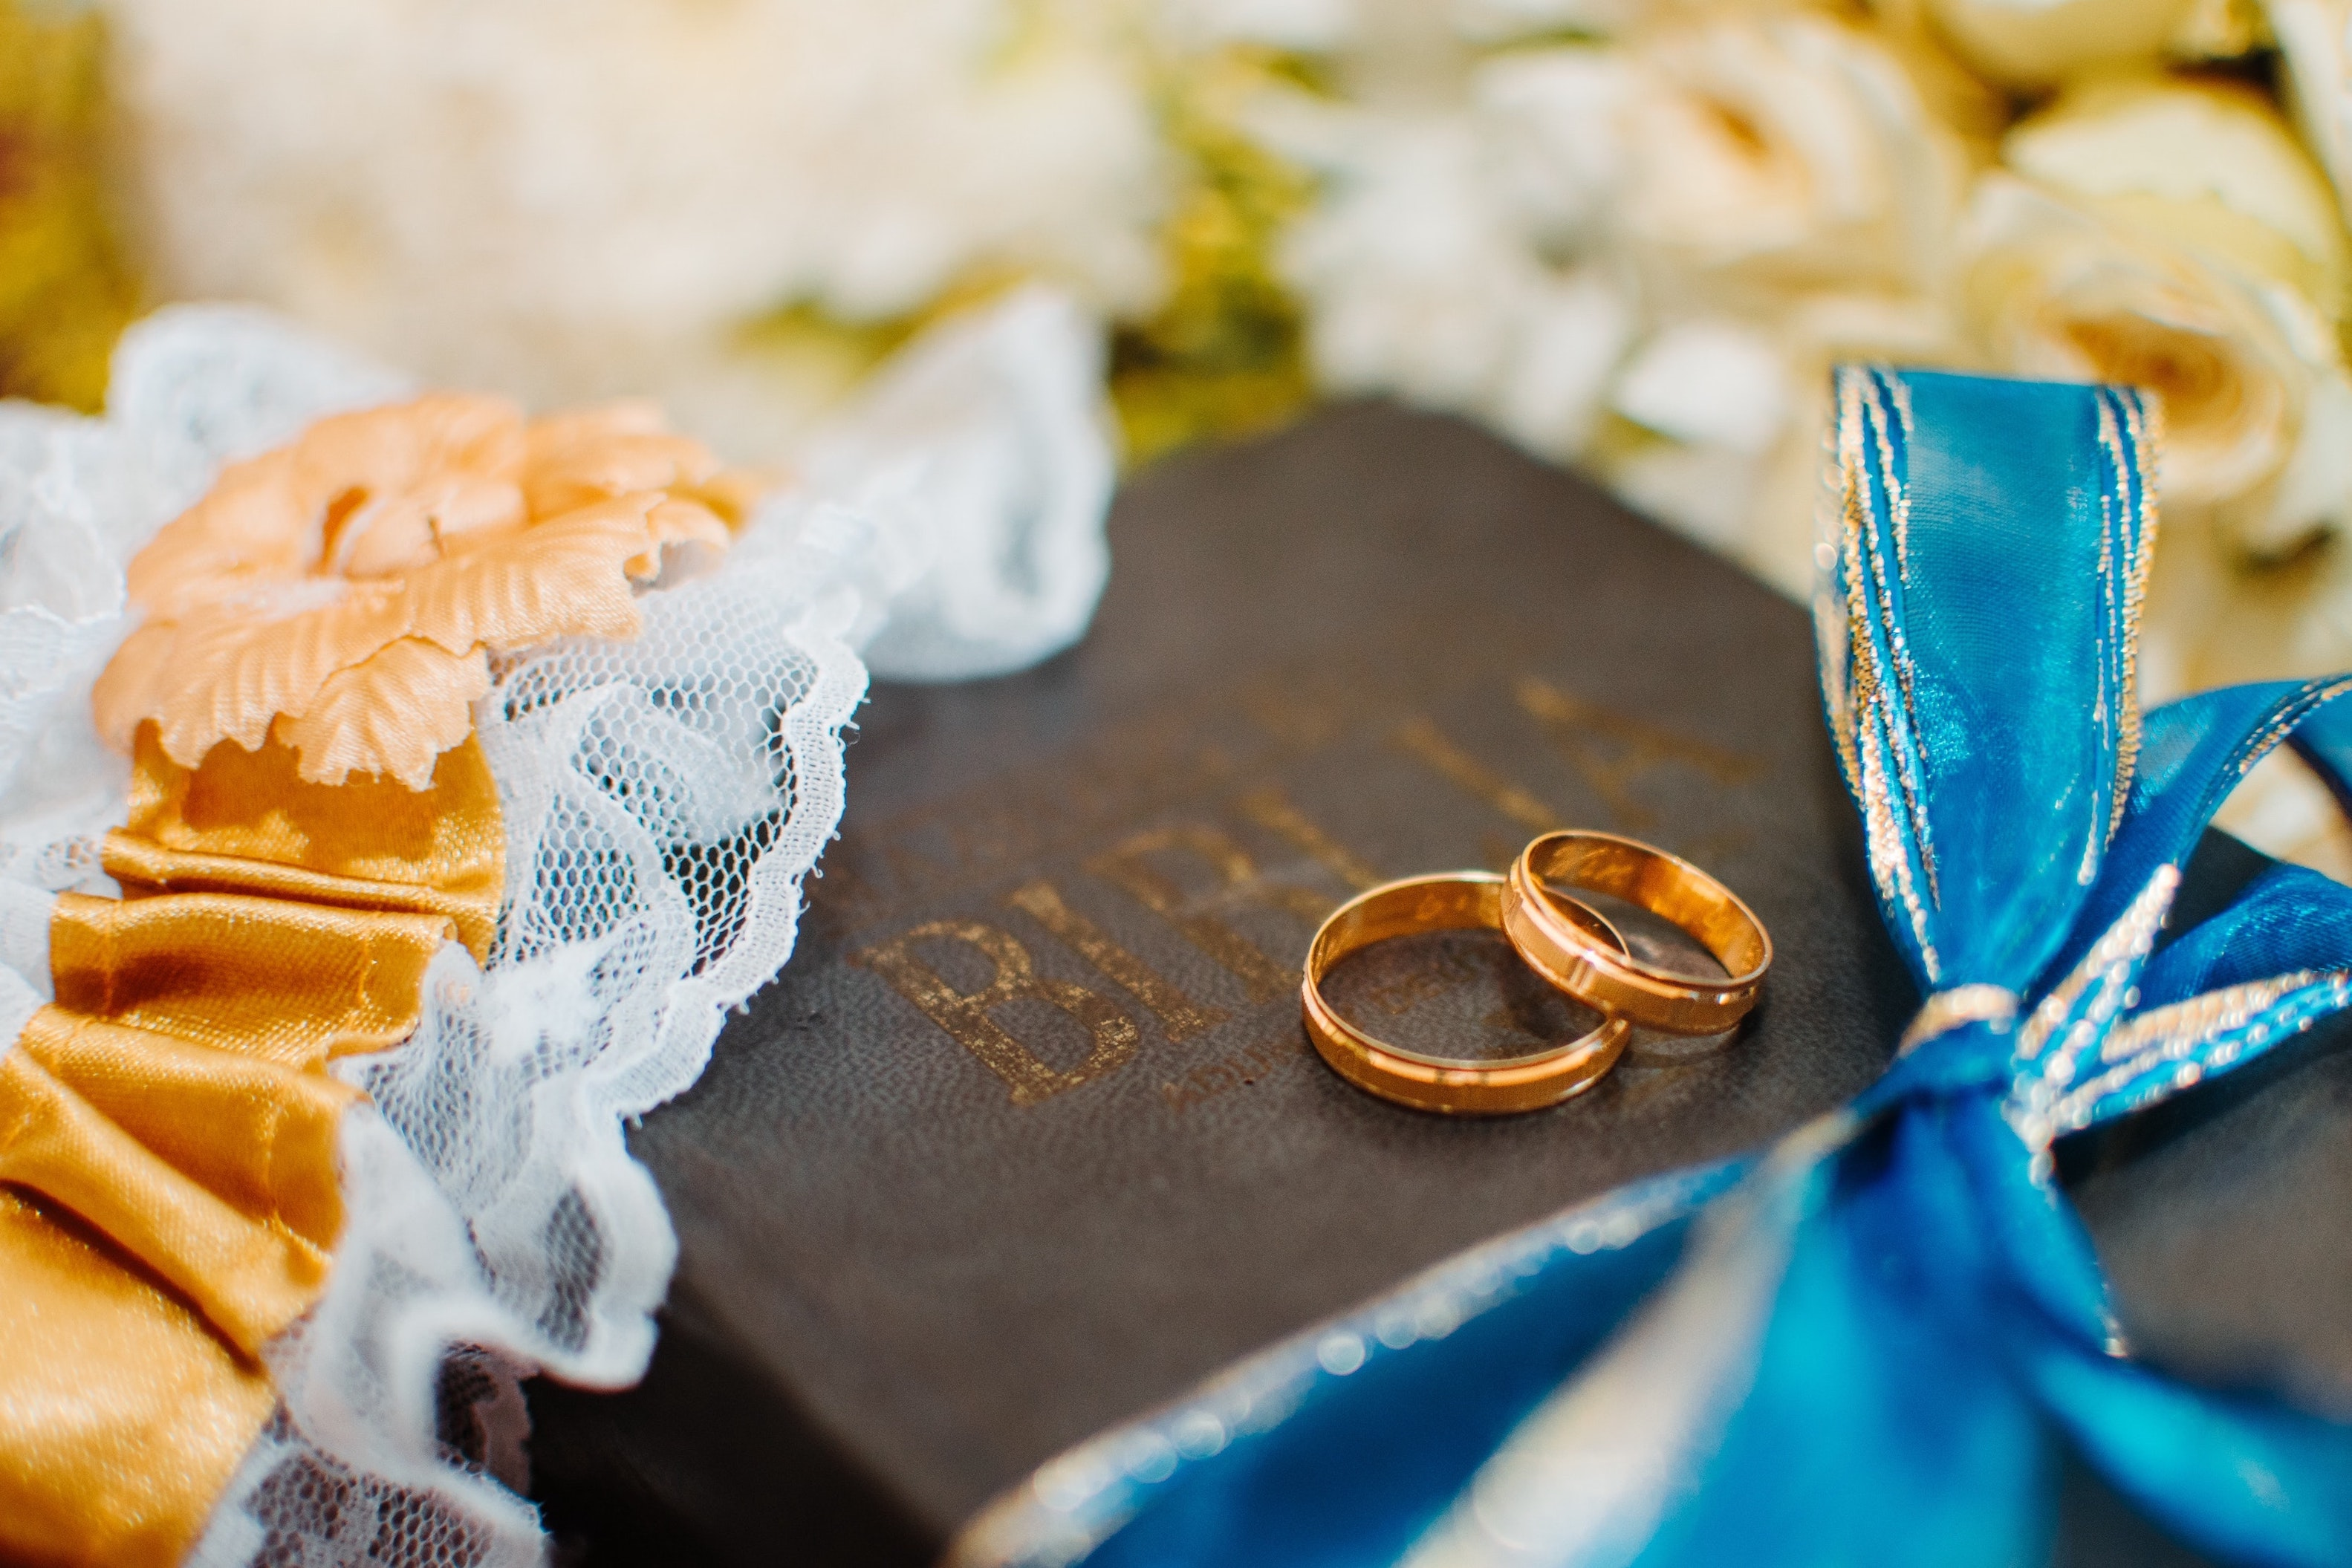 15 Bible Verses About Love and Marriage